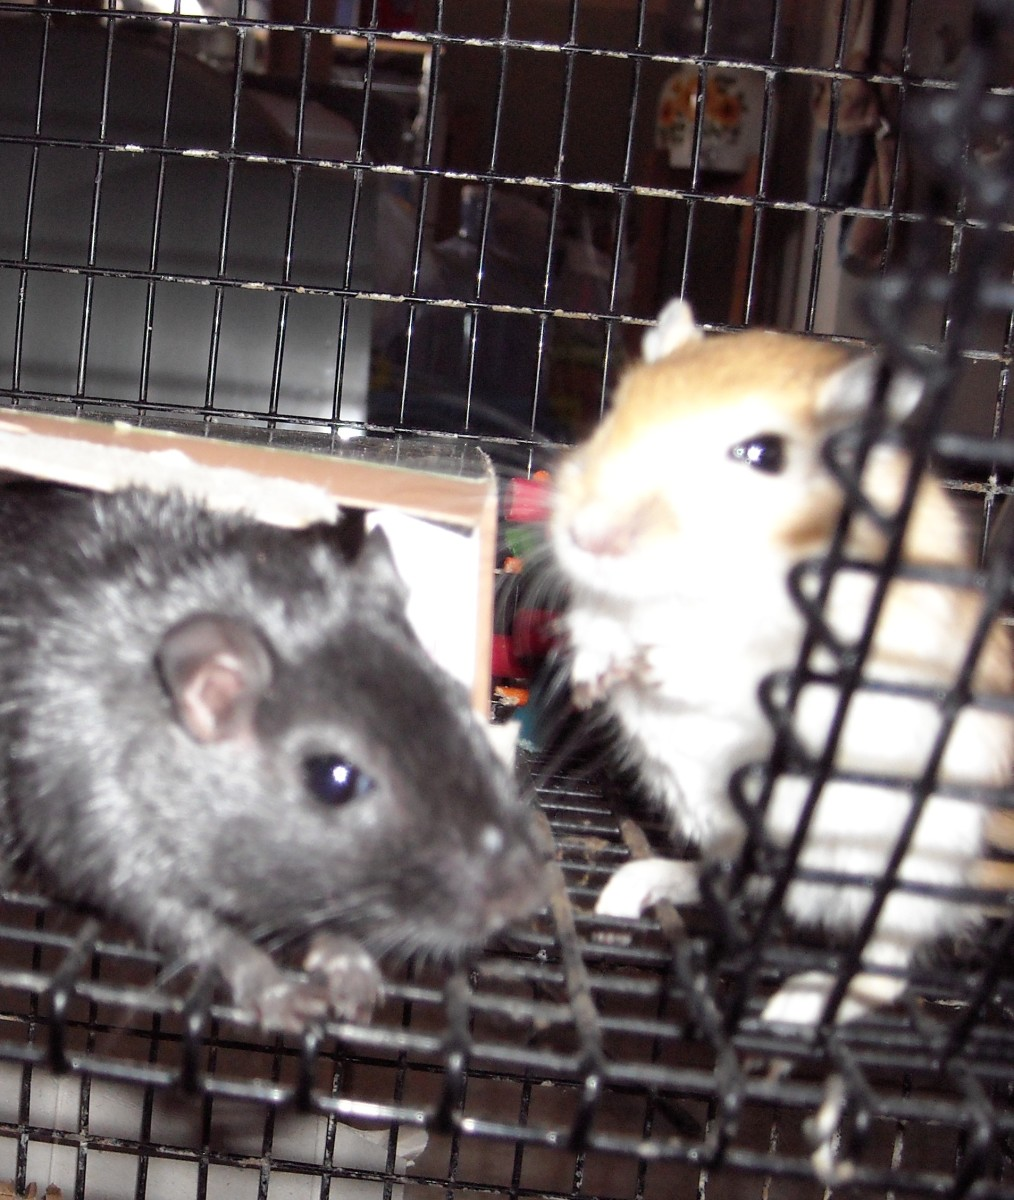 Our gerbils, Honey and Midnight, Honey is shy, but she's a sweetheart. Midnight is feisty but loving.